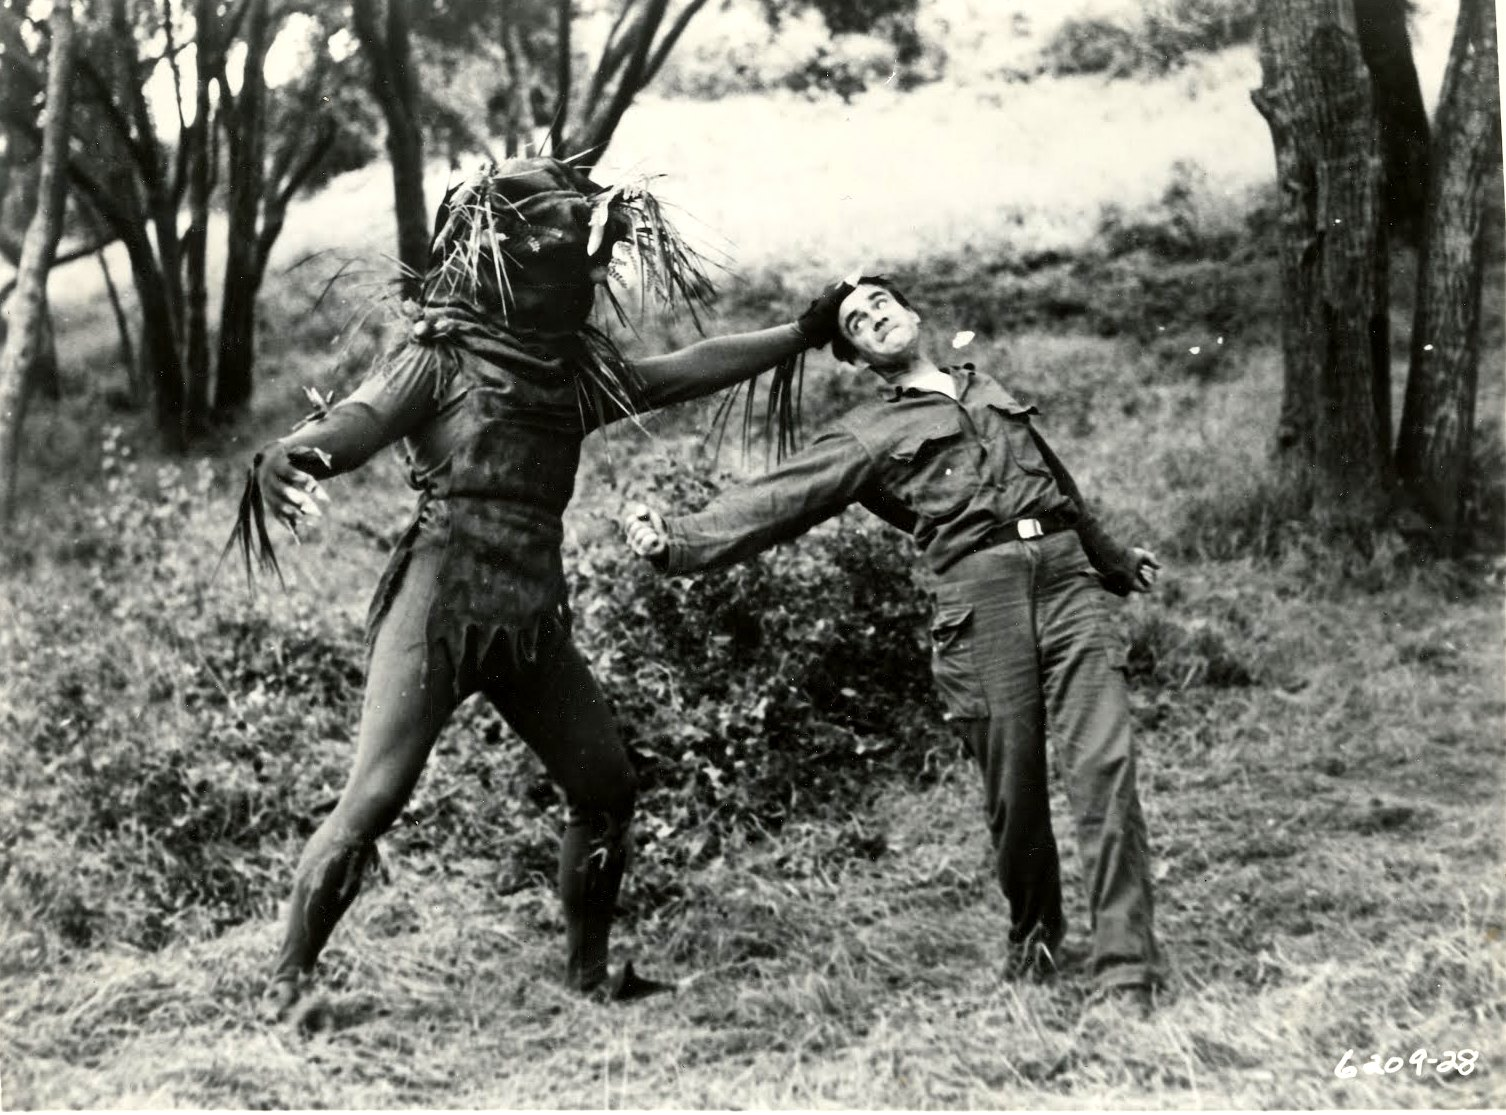 Ray Frank fights off a vegetable monster in Invasion of the Star Creatures (1962)